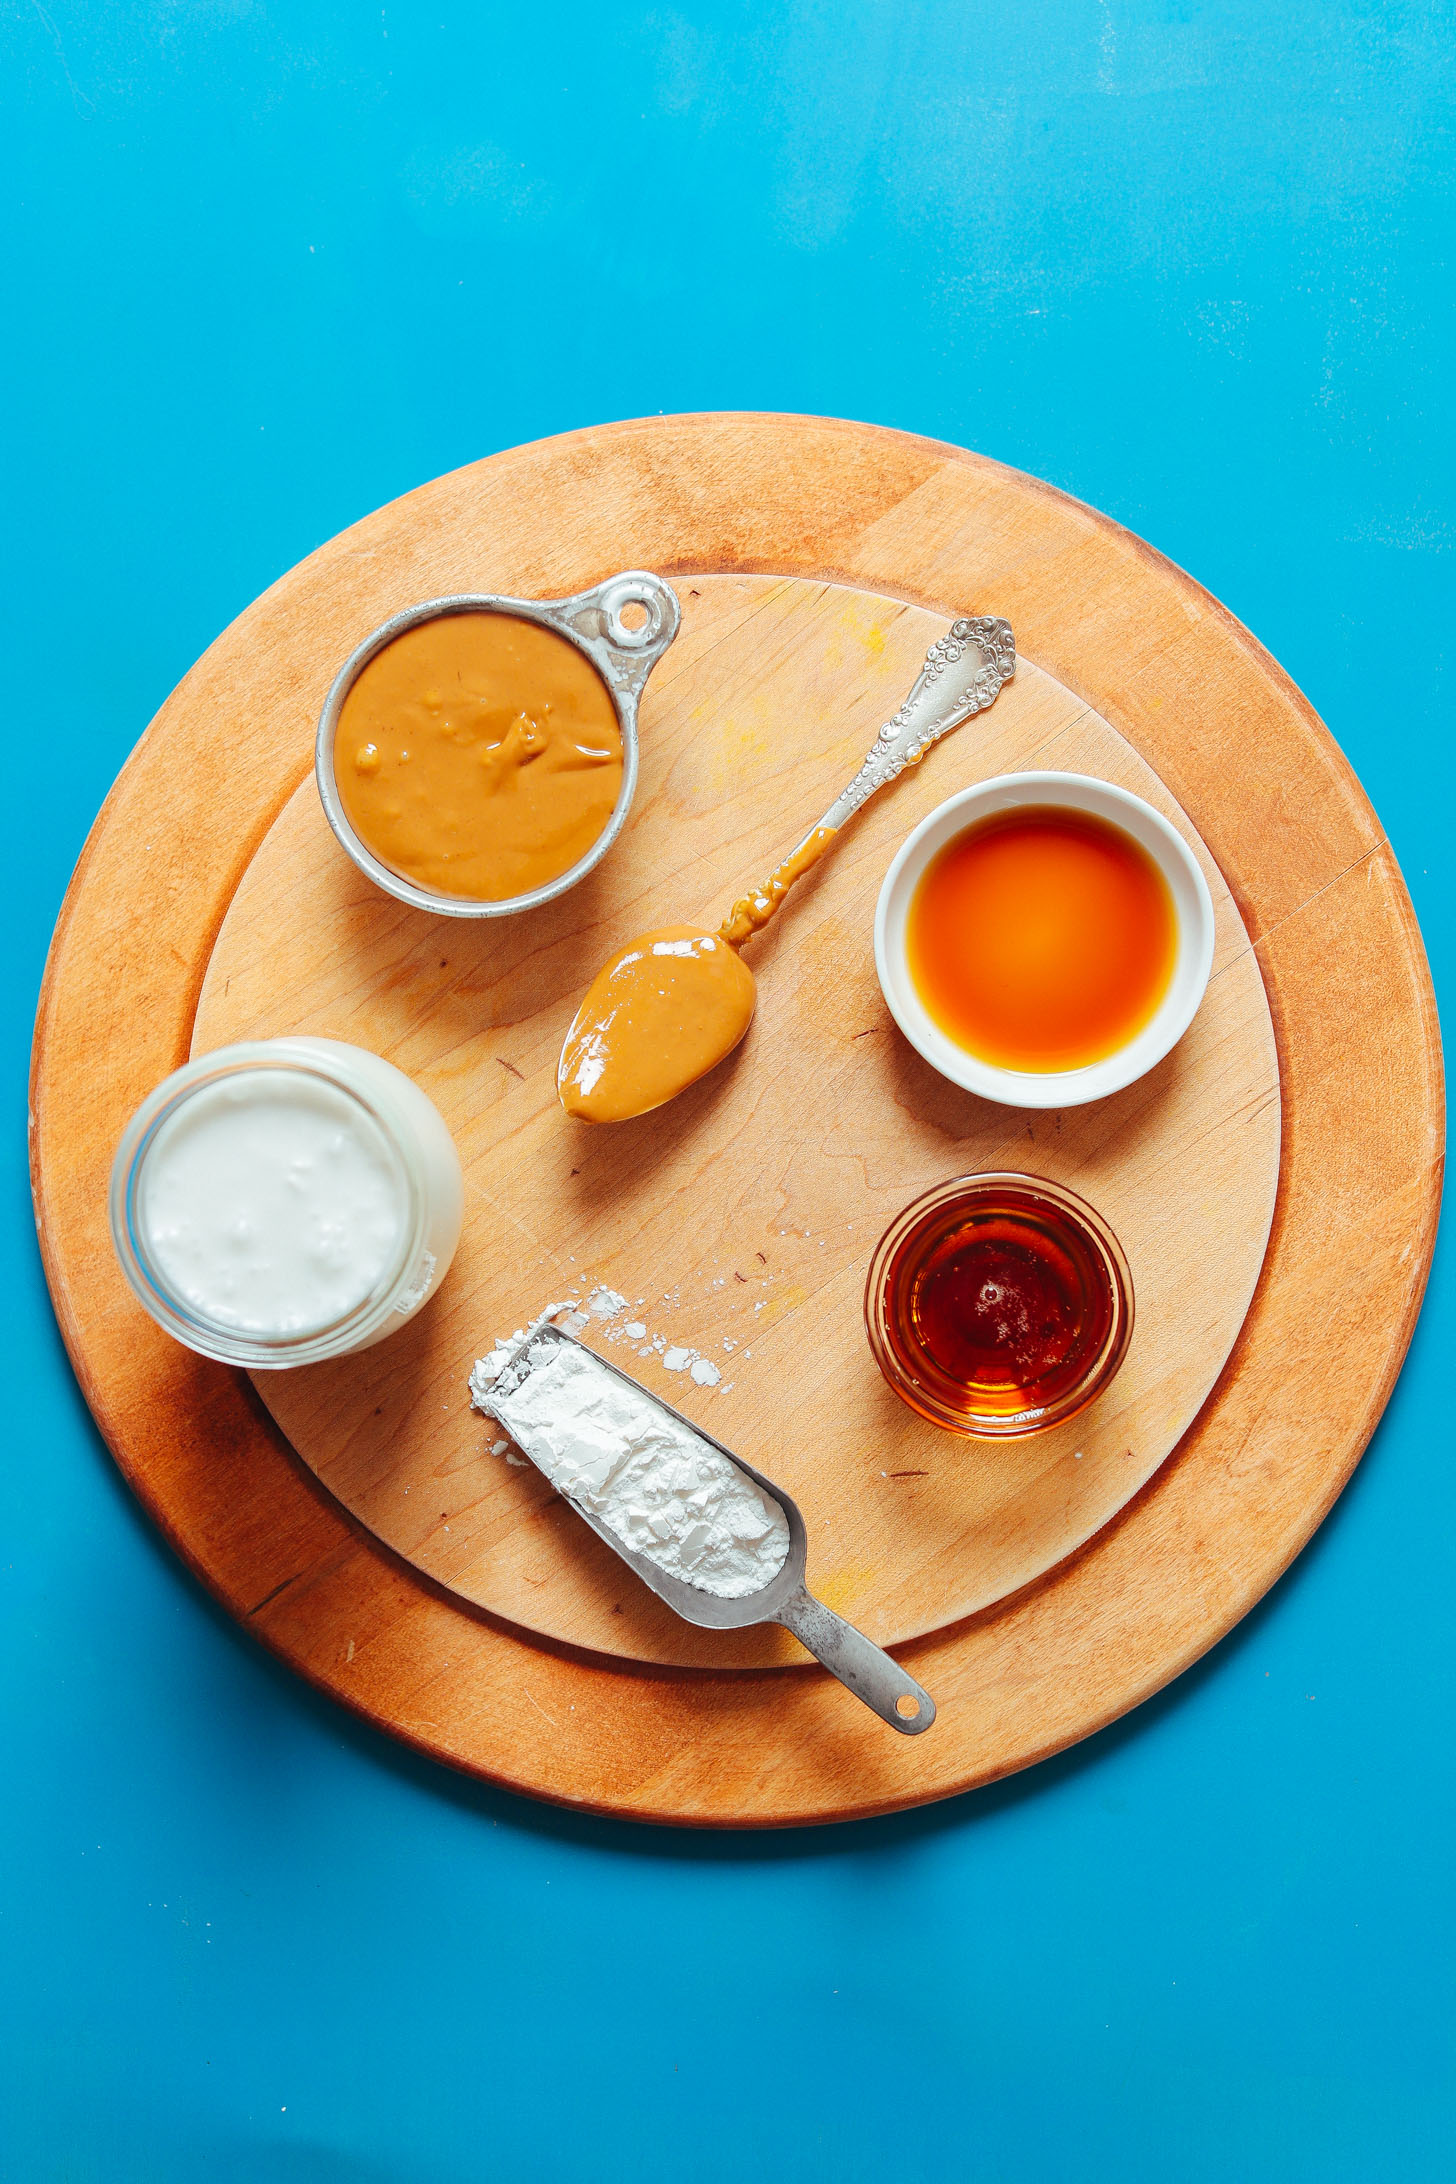 Ingredients for making our amazing naturally-sweetened Vegan Peanut Butter Pudding recipe